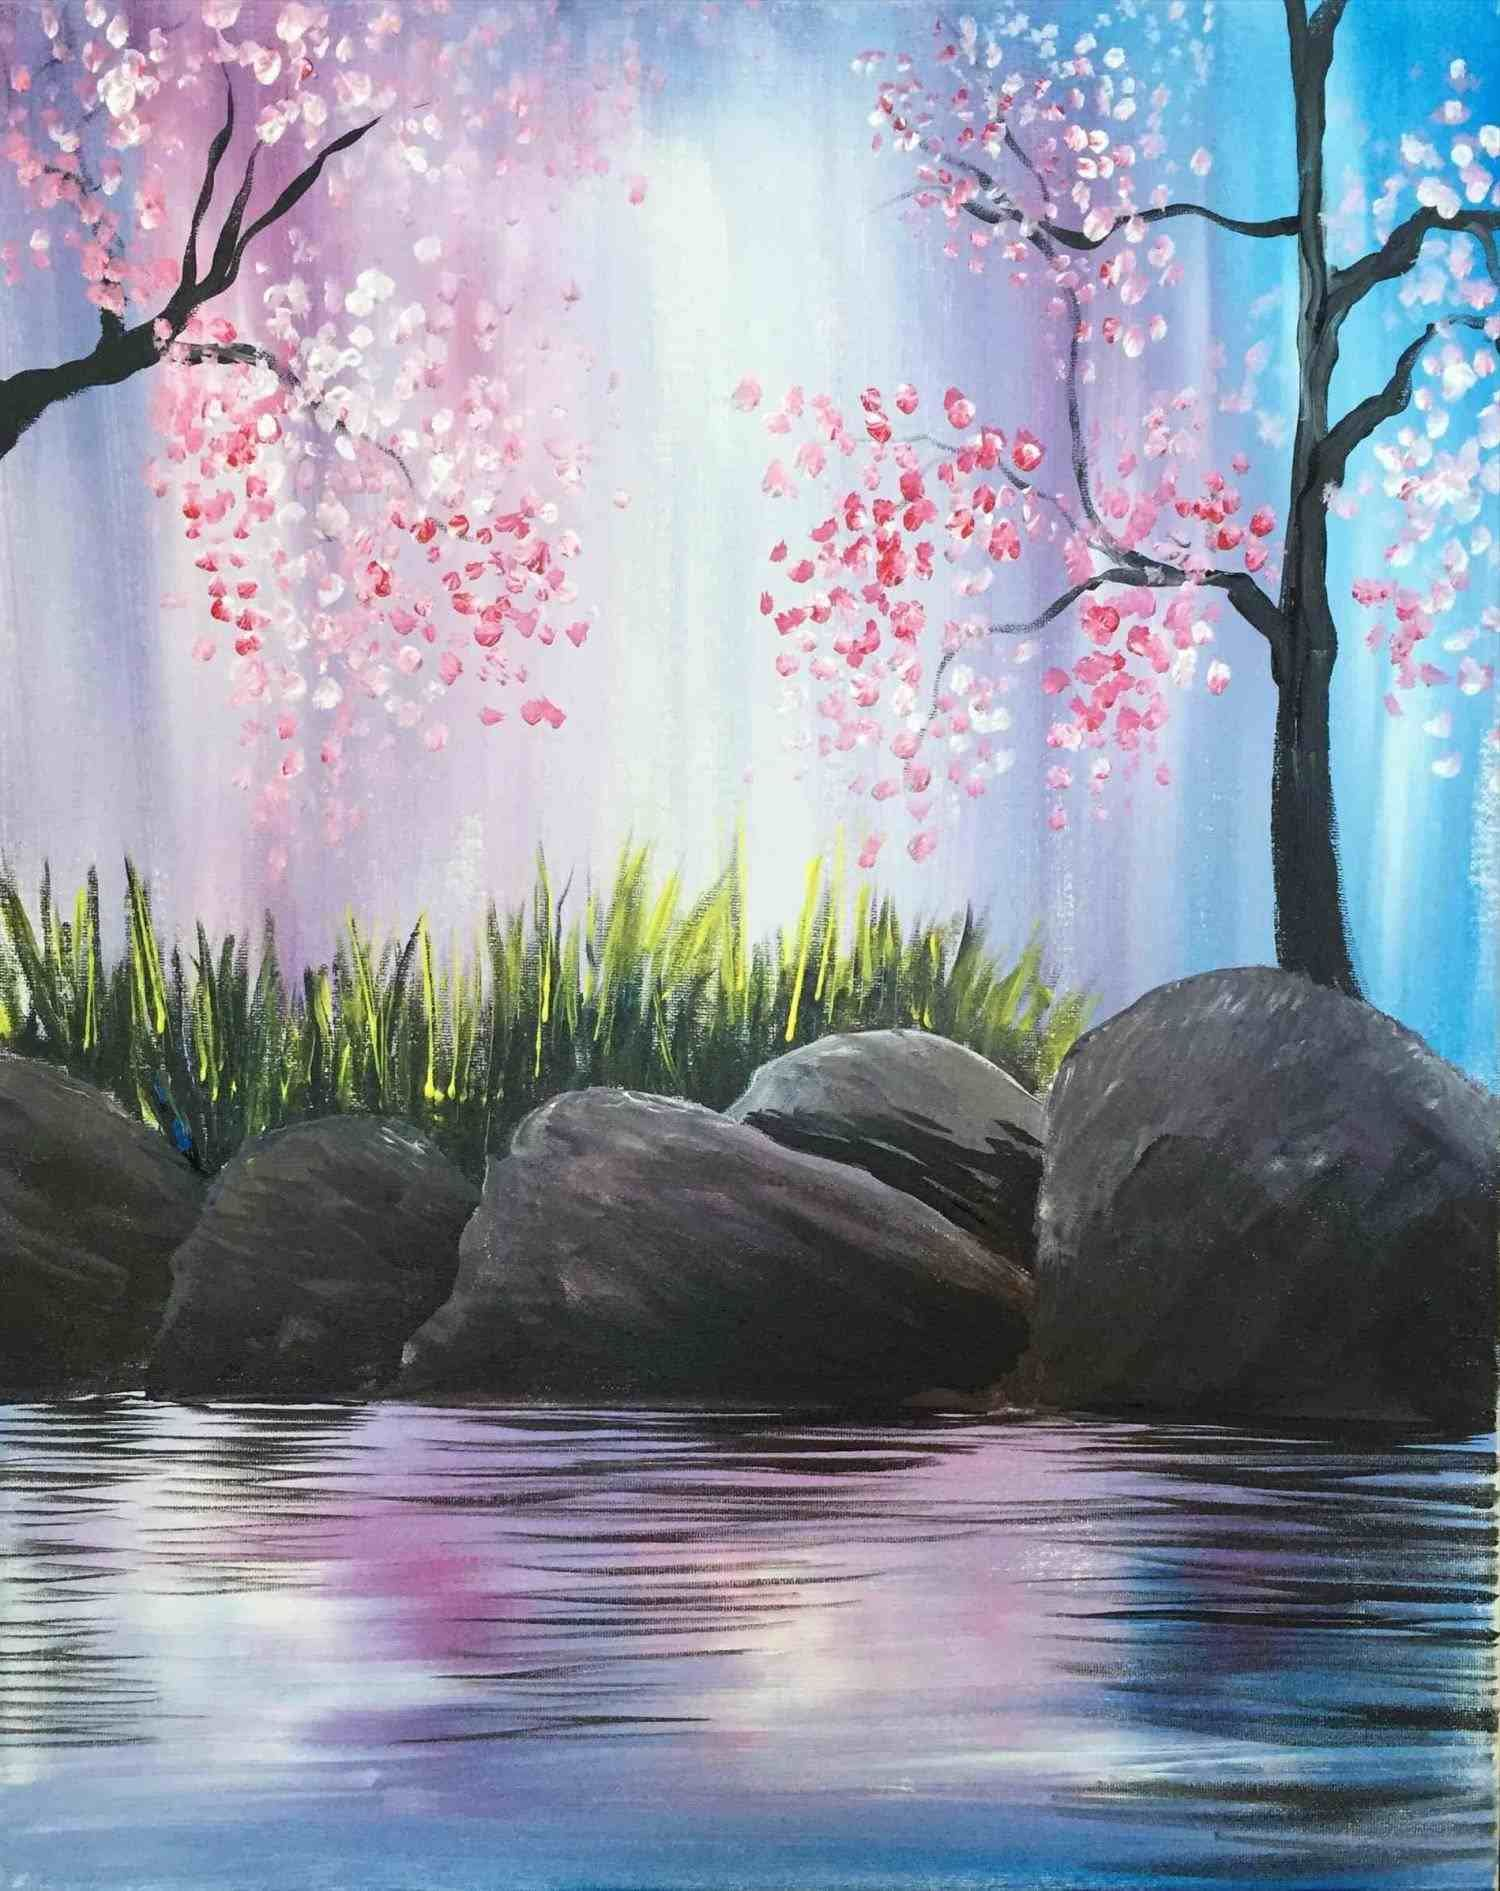 Acrylic Painting Ideas Google Search Night Painting Spring